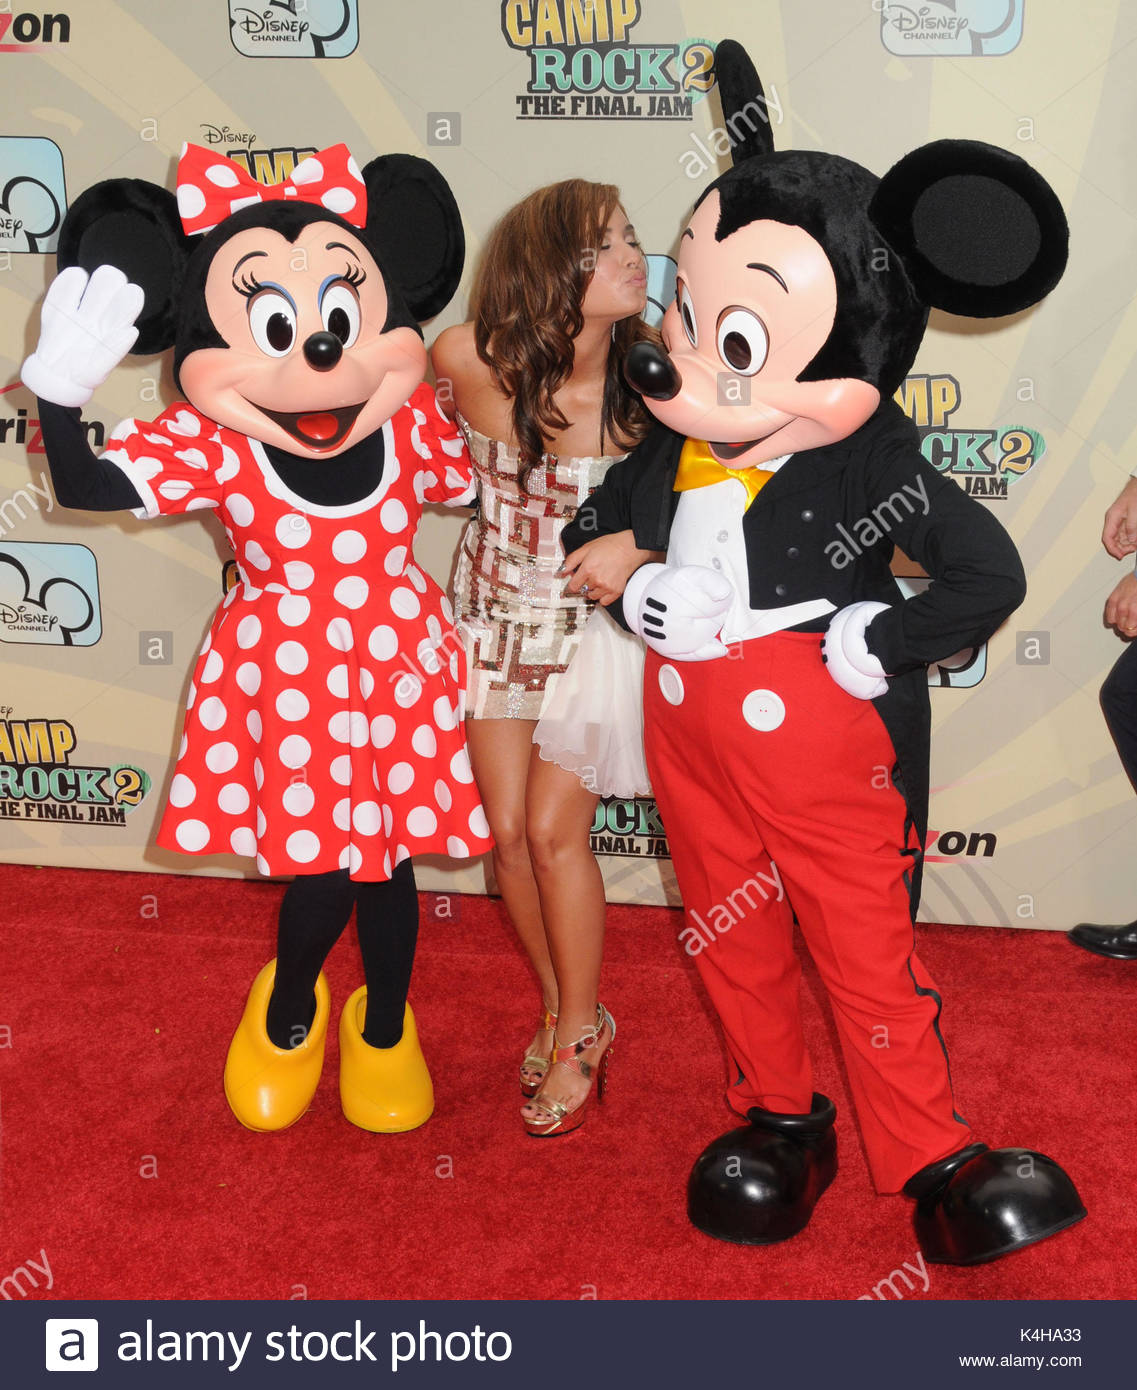 minnie mouse, demi lovato and mickey mouse. singer/actress demi